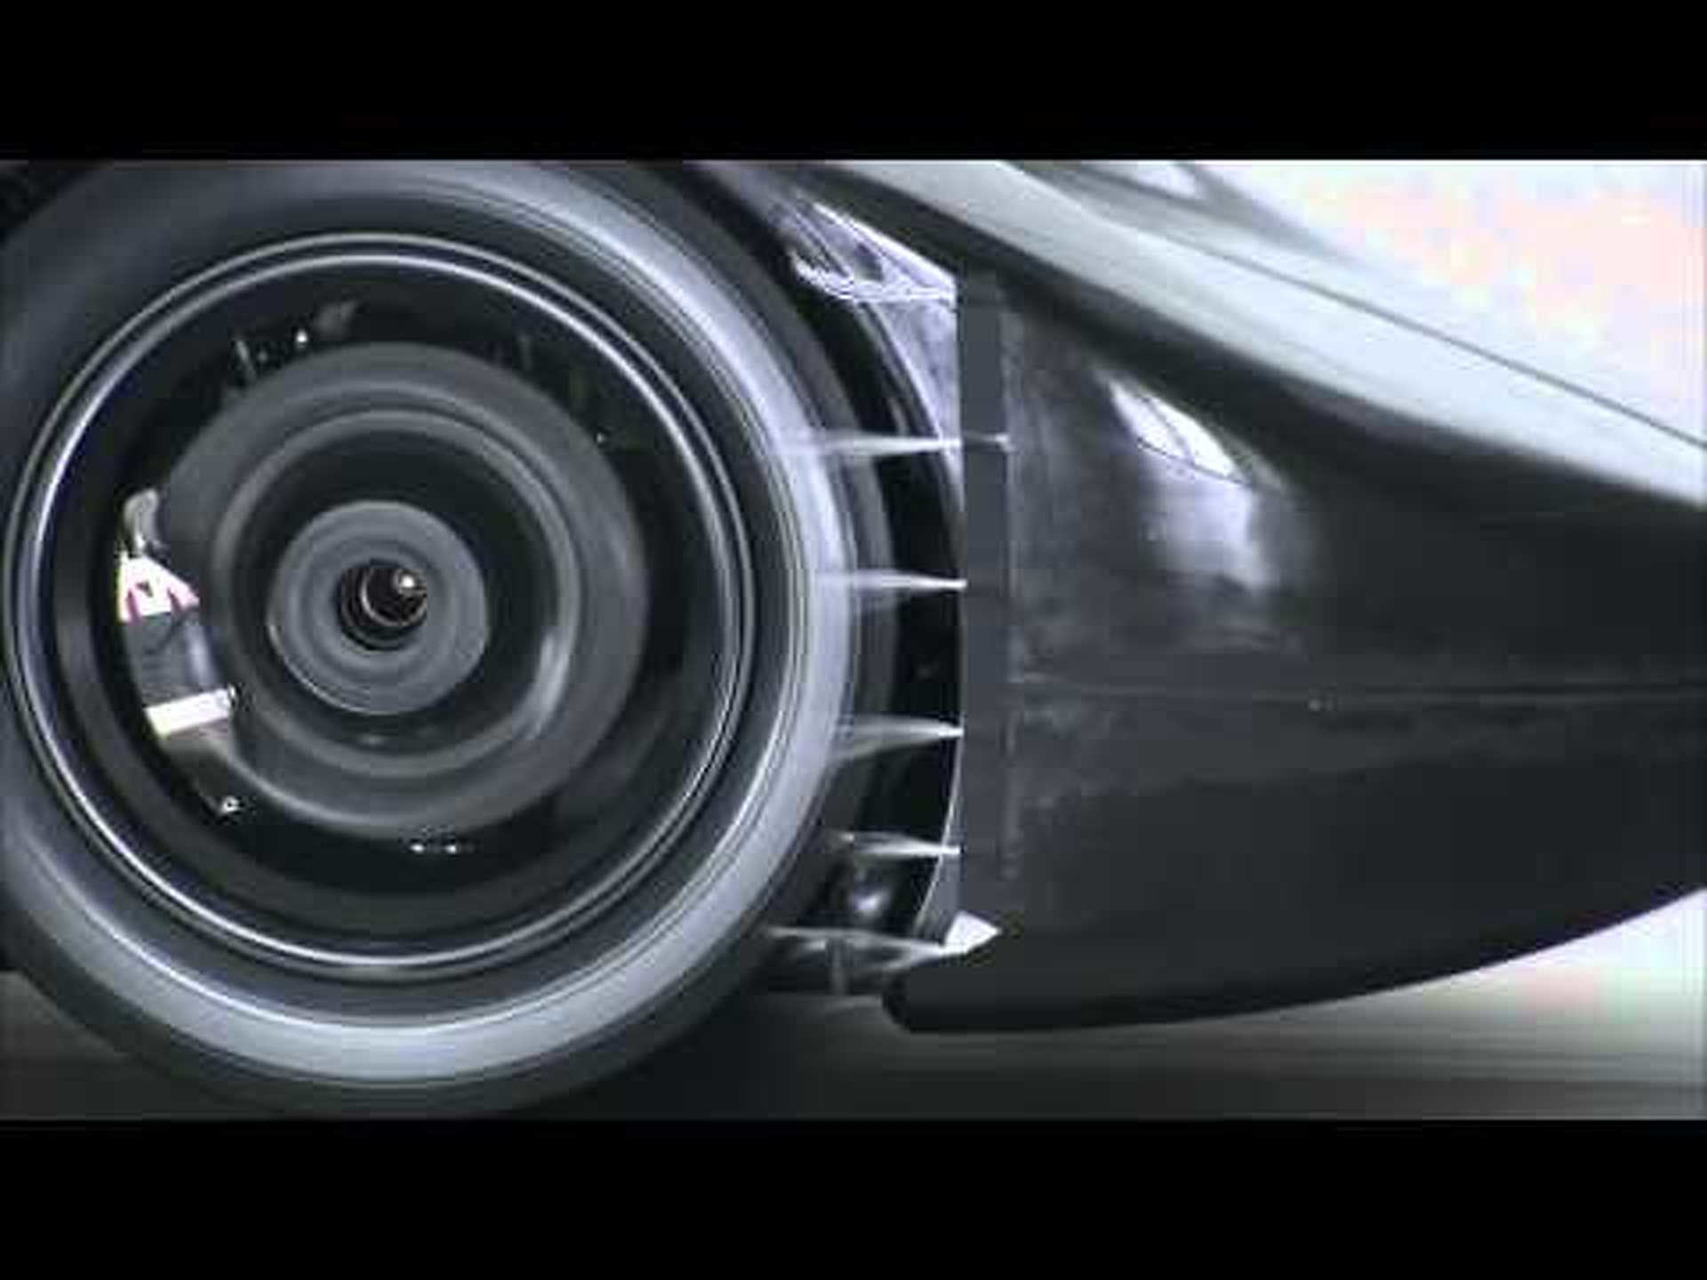 2012 Nissan DeltaWing Unveiling